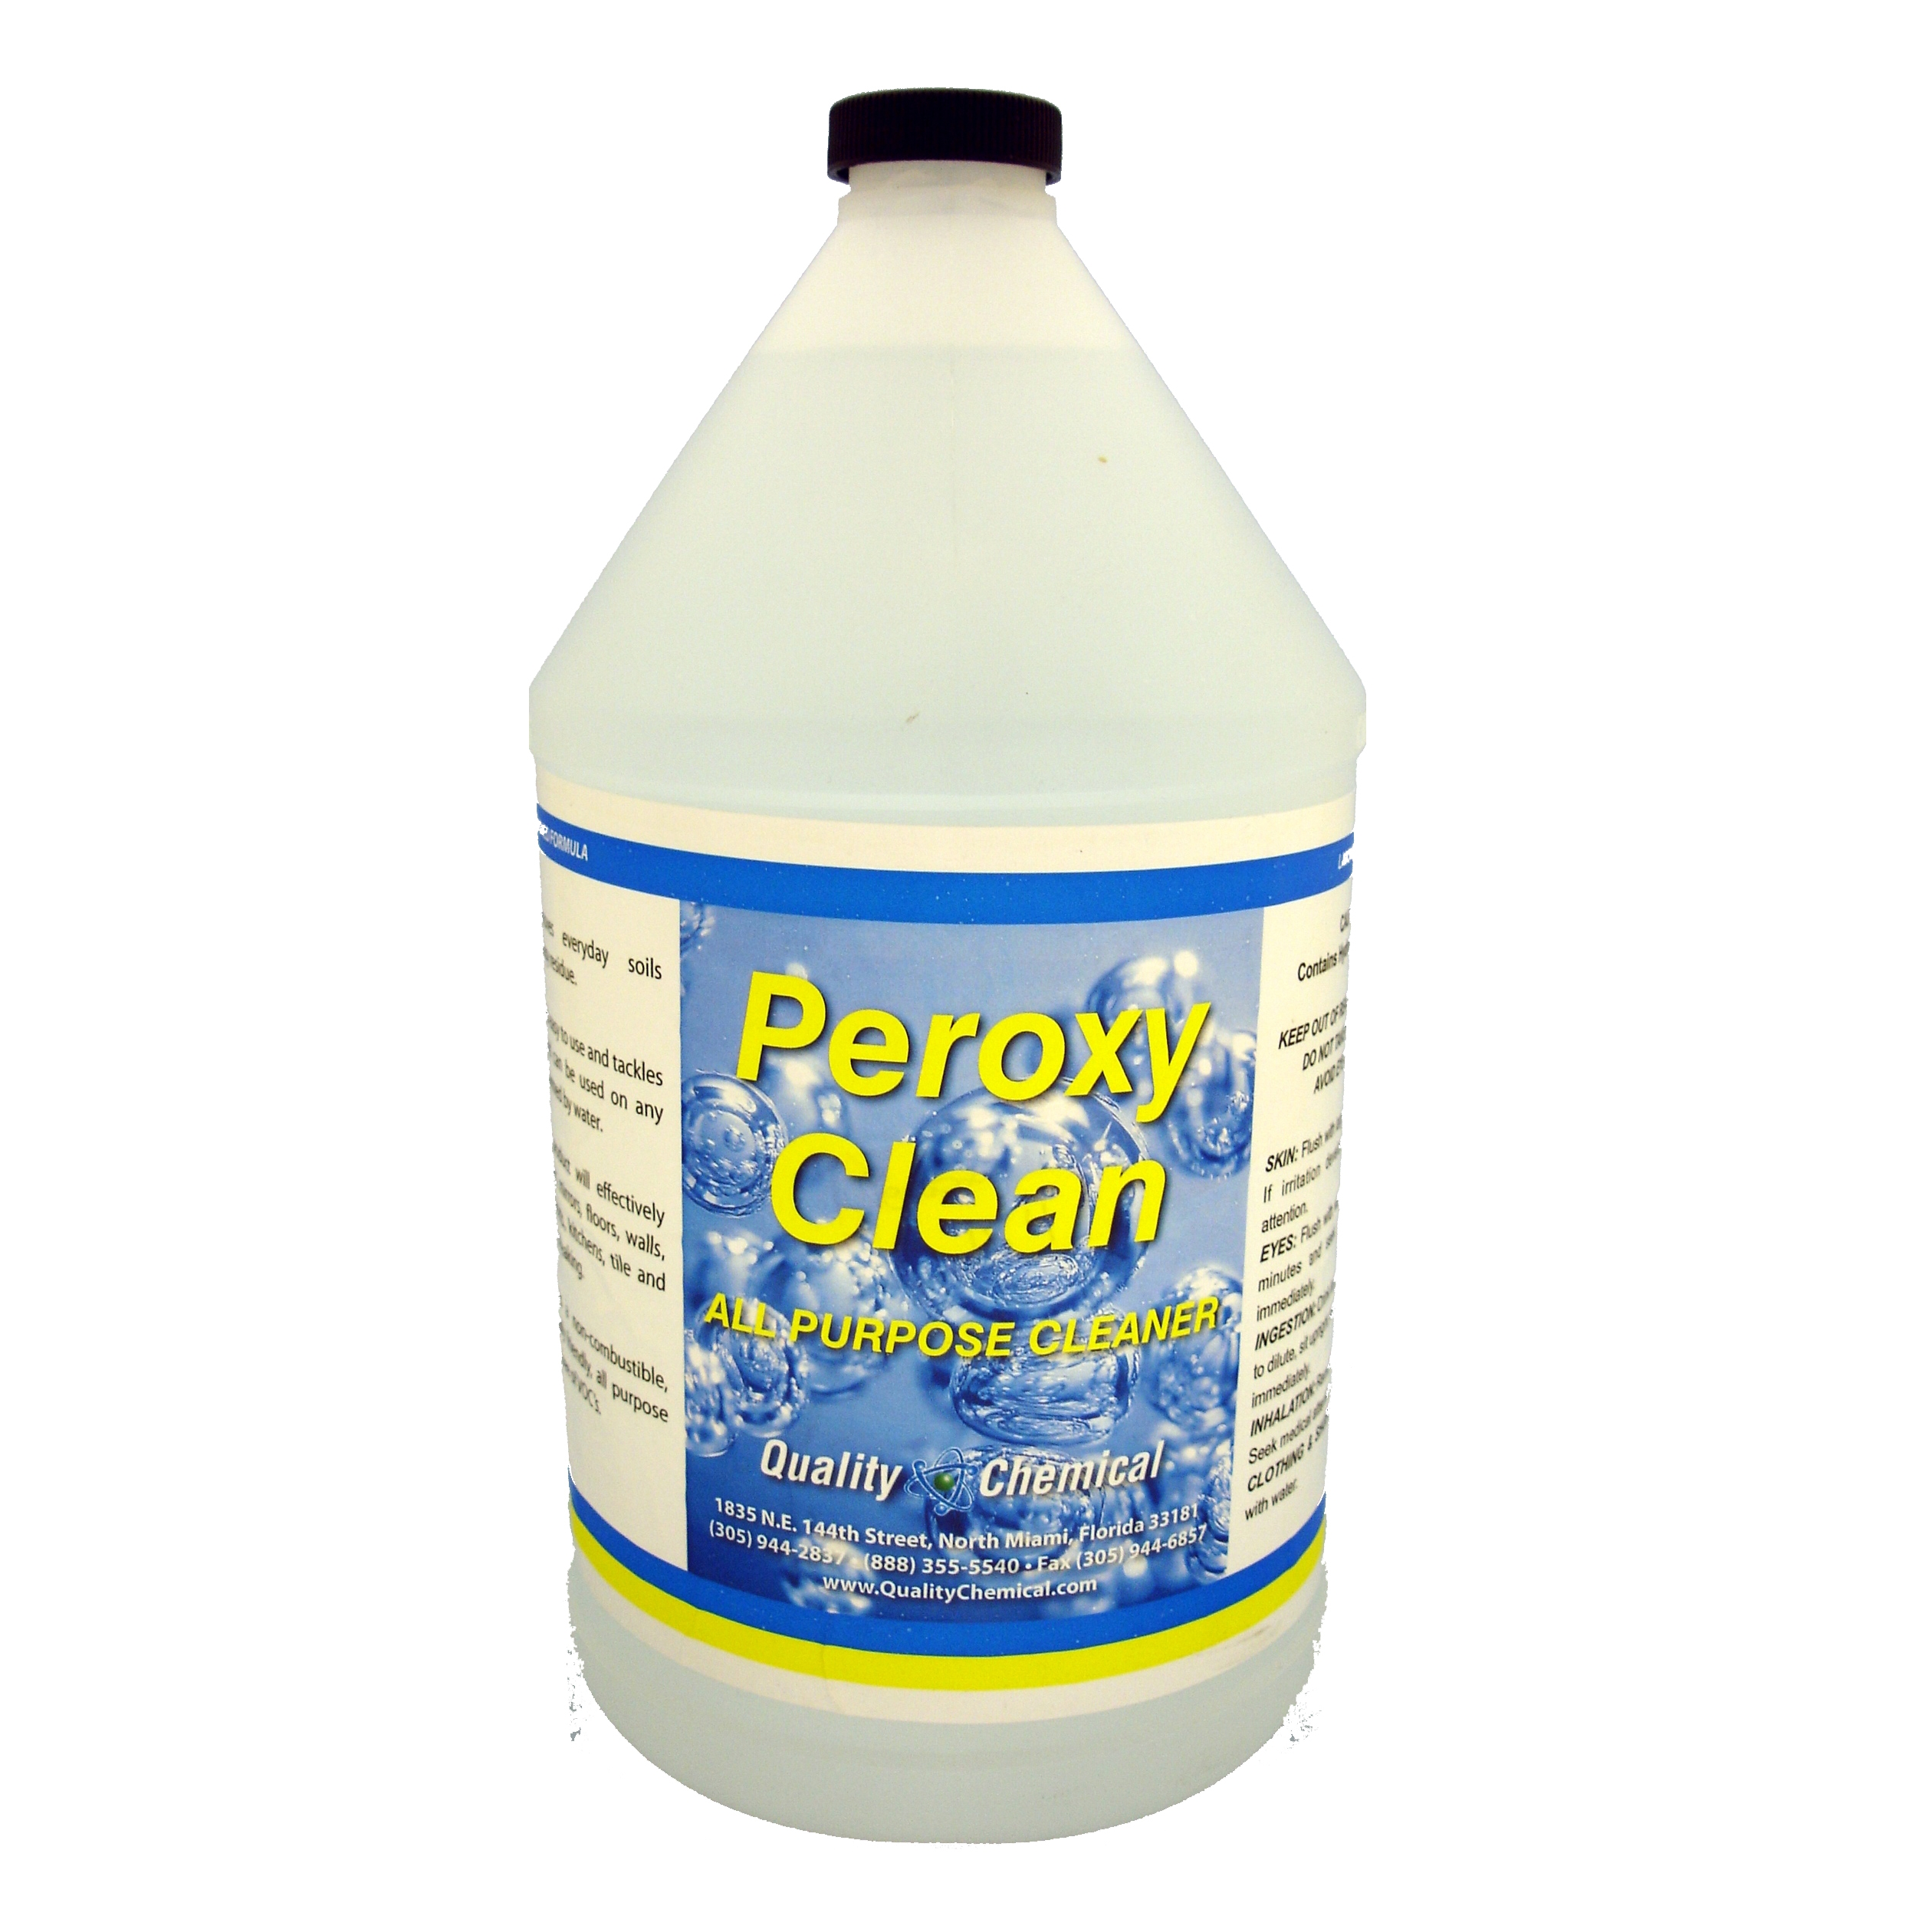 Peroxy Clean